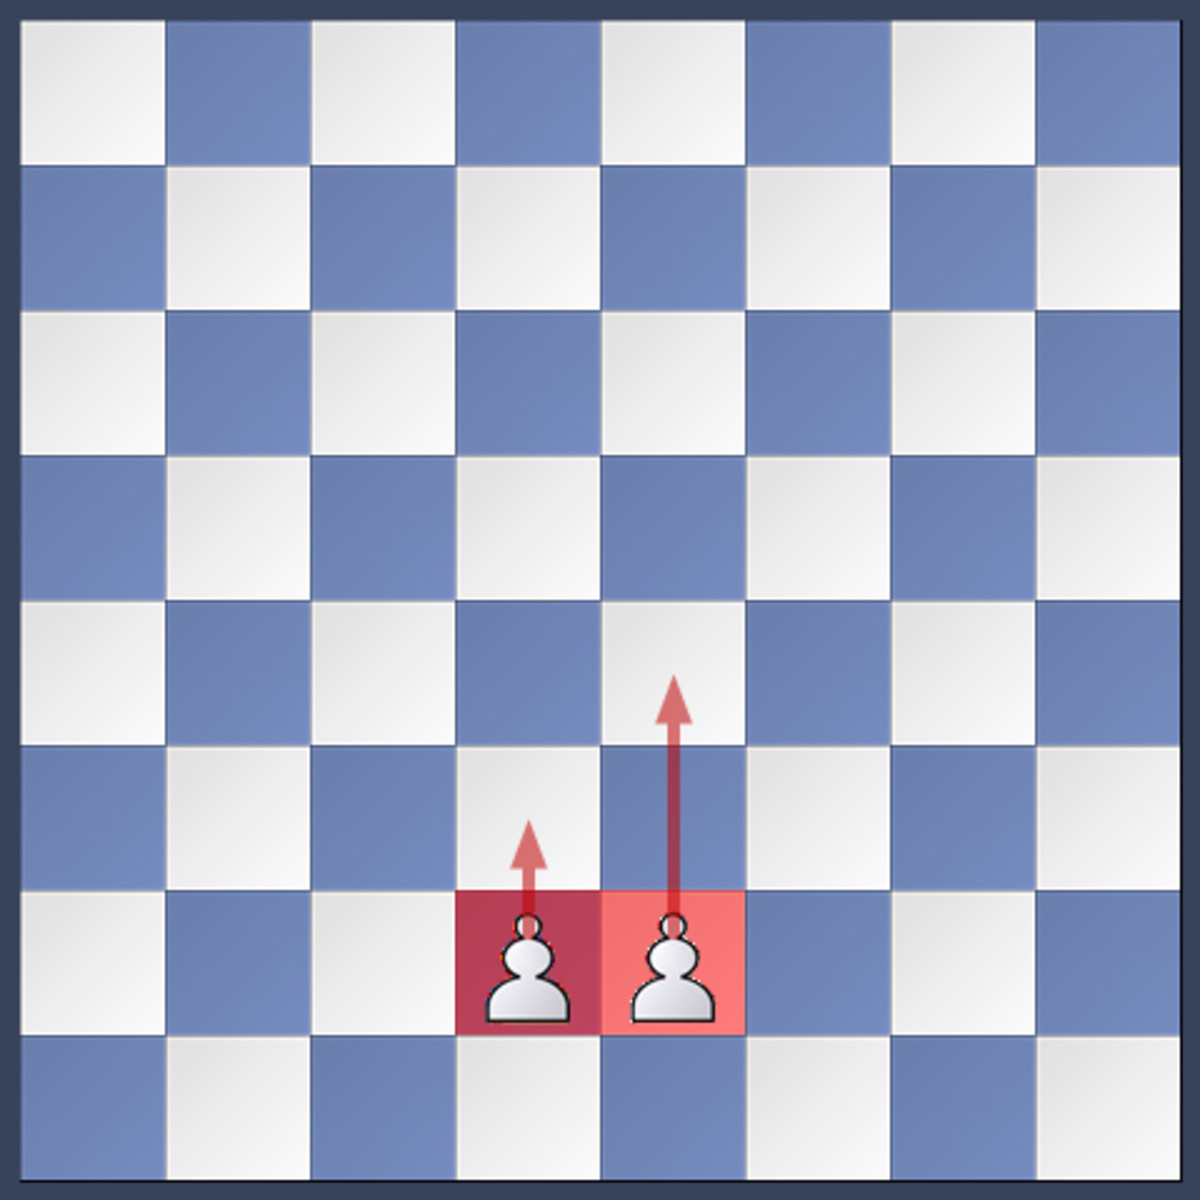 A pawn can move one or two squares (only from its starting position) forward. It cannot move backward.